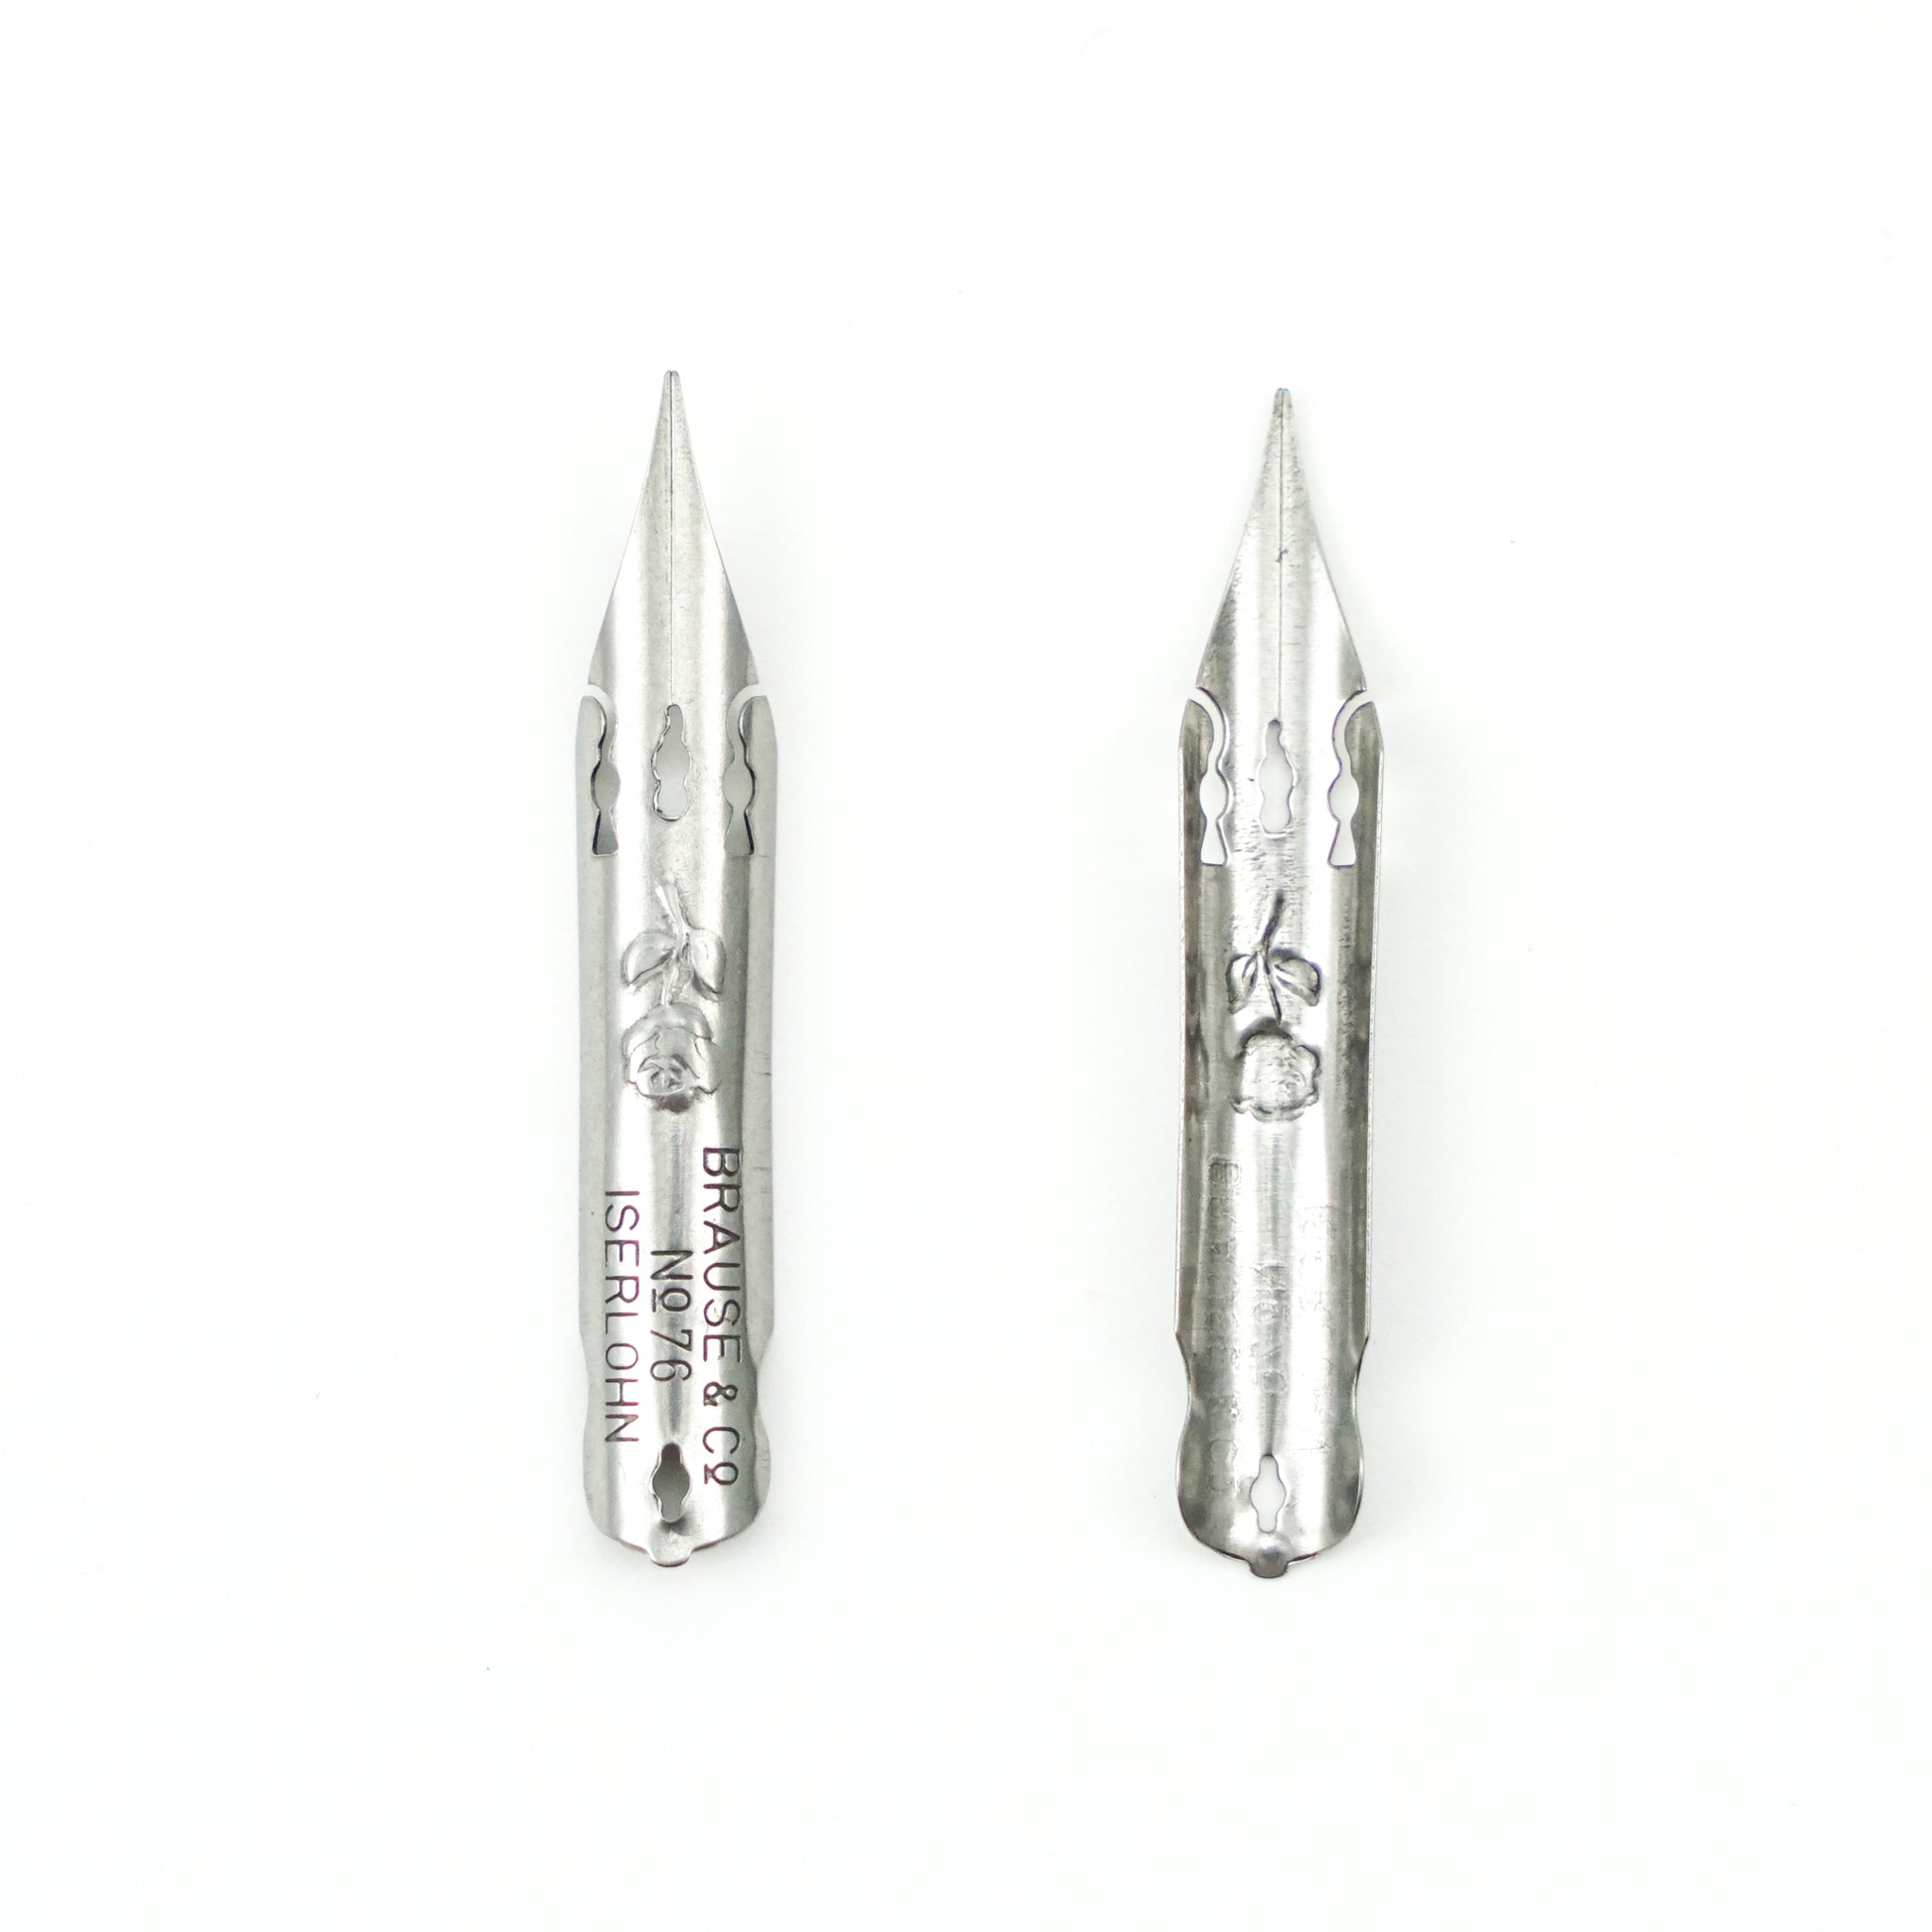 Brause Rose Drawing / Calligraphy Nibs - 2/pack - by Brause - K. A. Artist Shop